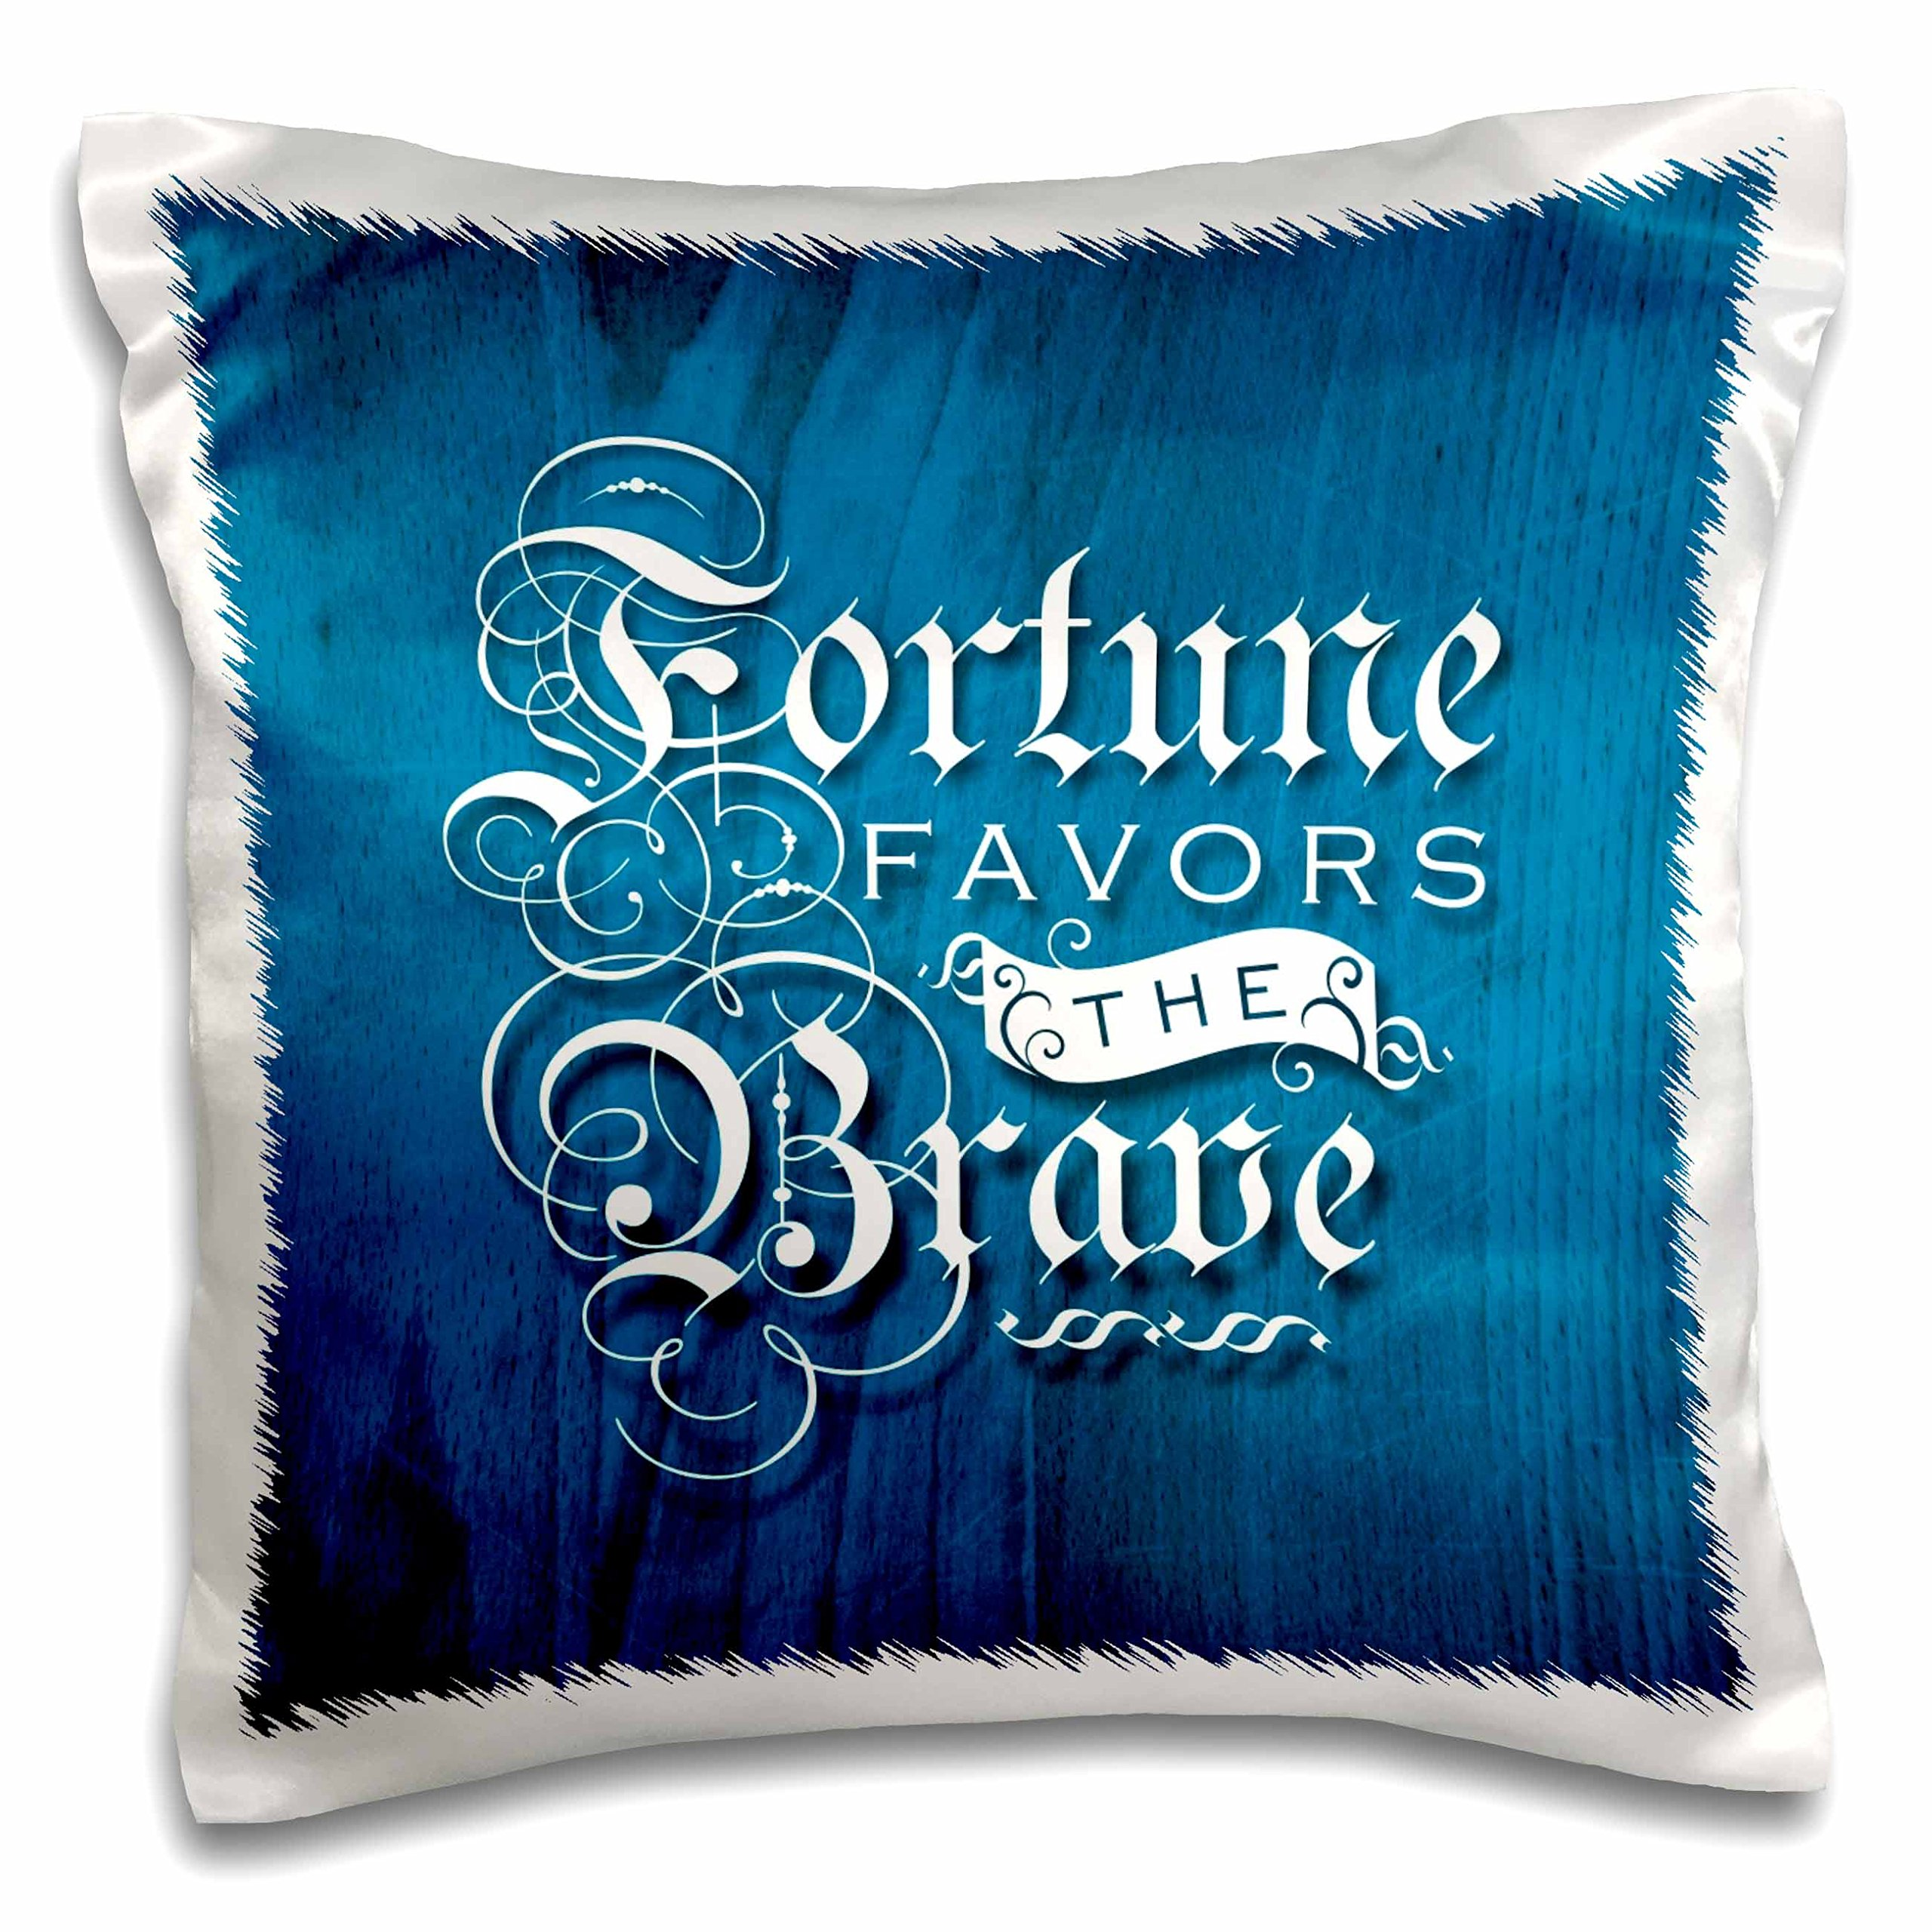 3D Rose Blue Wood Effect with White Gothic Script Fortune Favors The Brave Pillow Case, 16'' x 16''